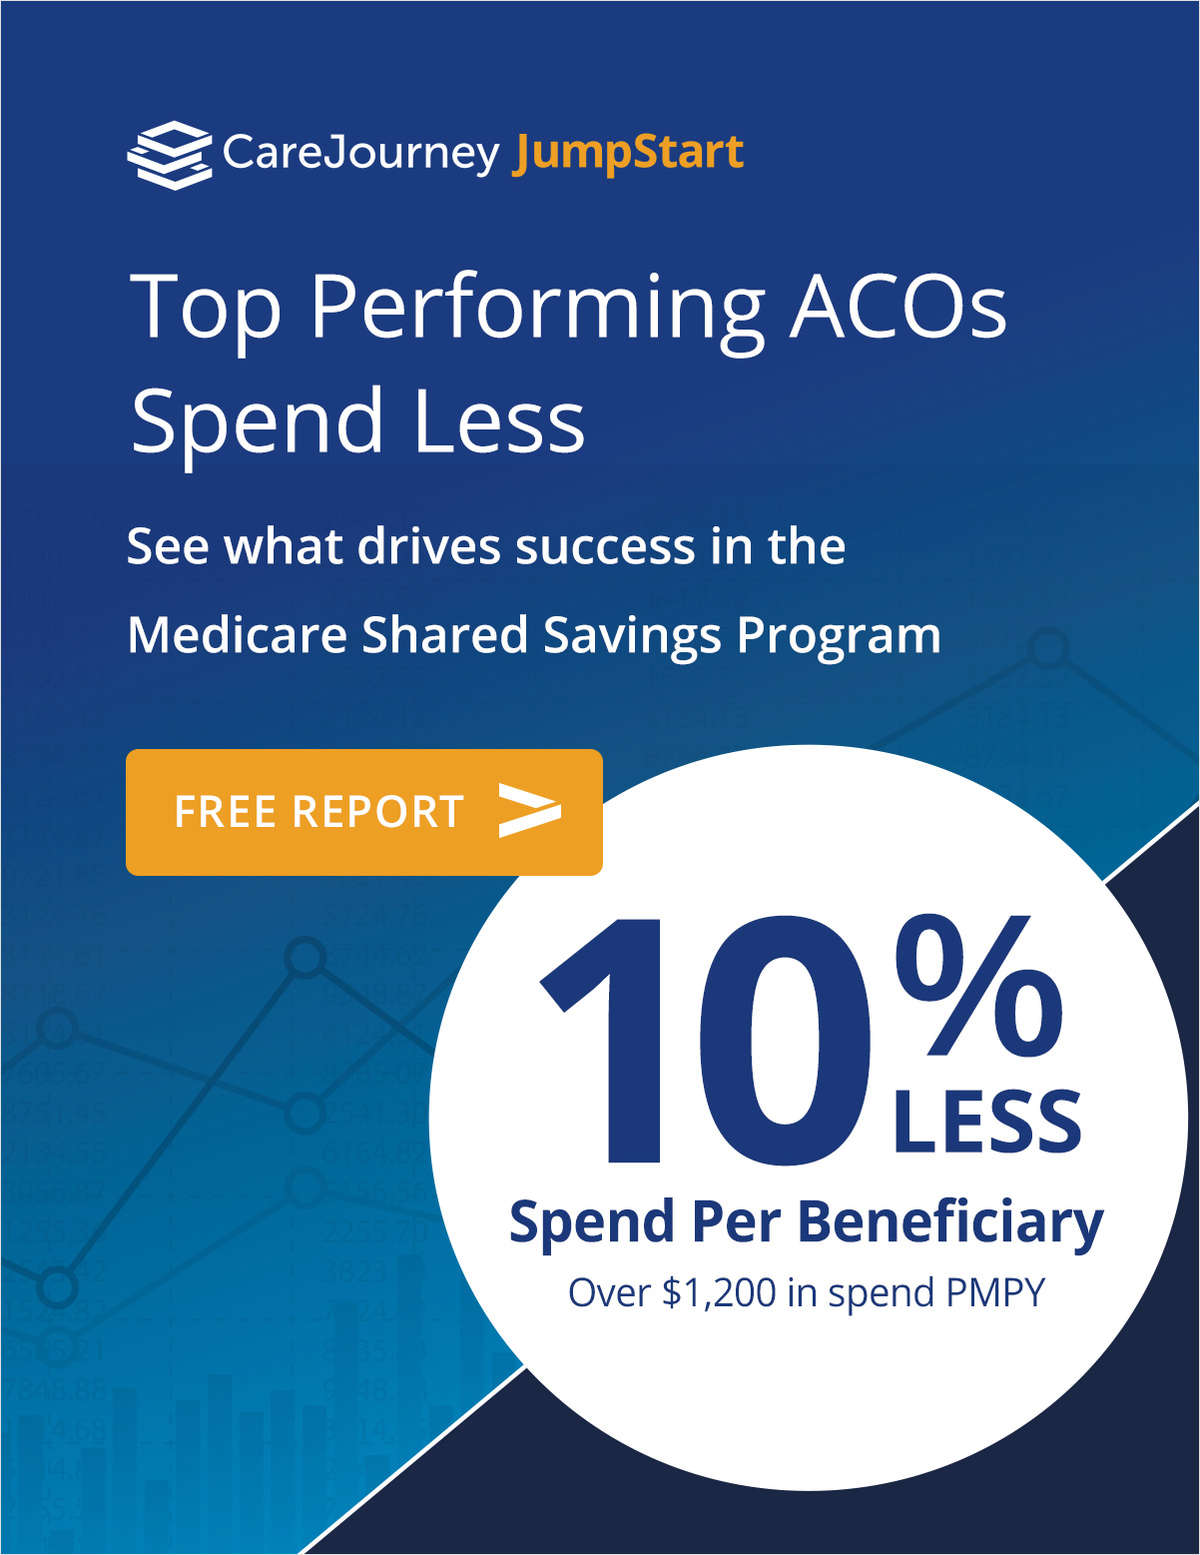 Profiling ACO Success: What Drives High Performance in the Medicare Shared Savings Program?